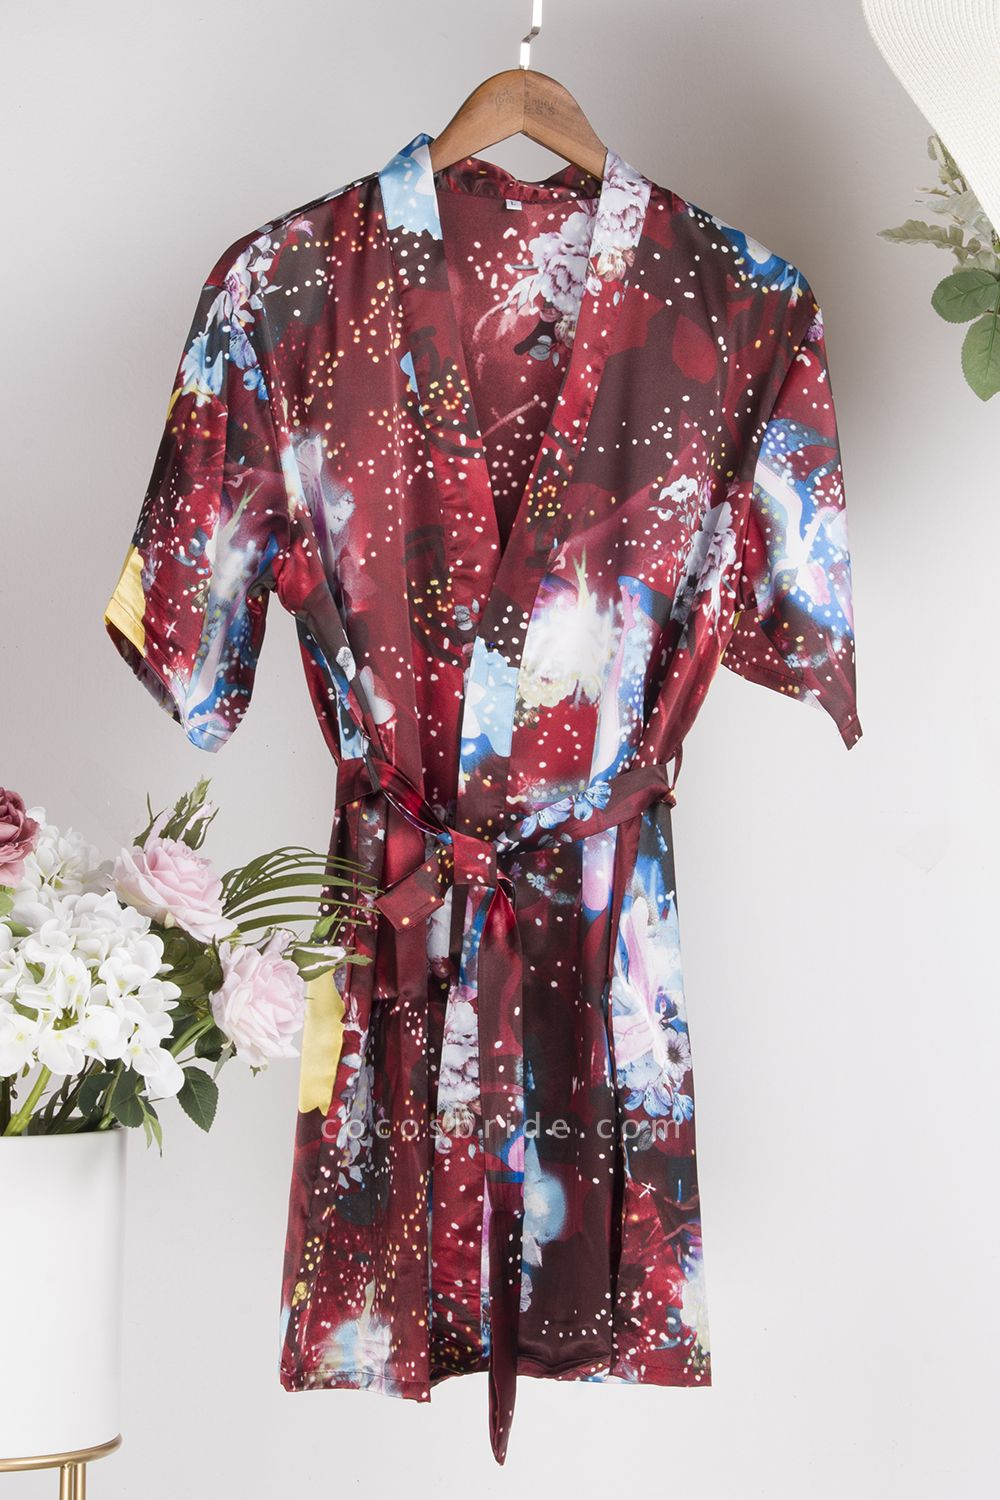 Affordable Printed Bridesmaid Bridal Robes